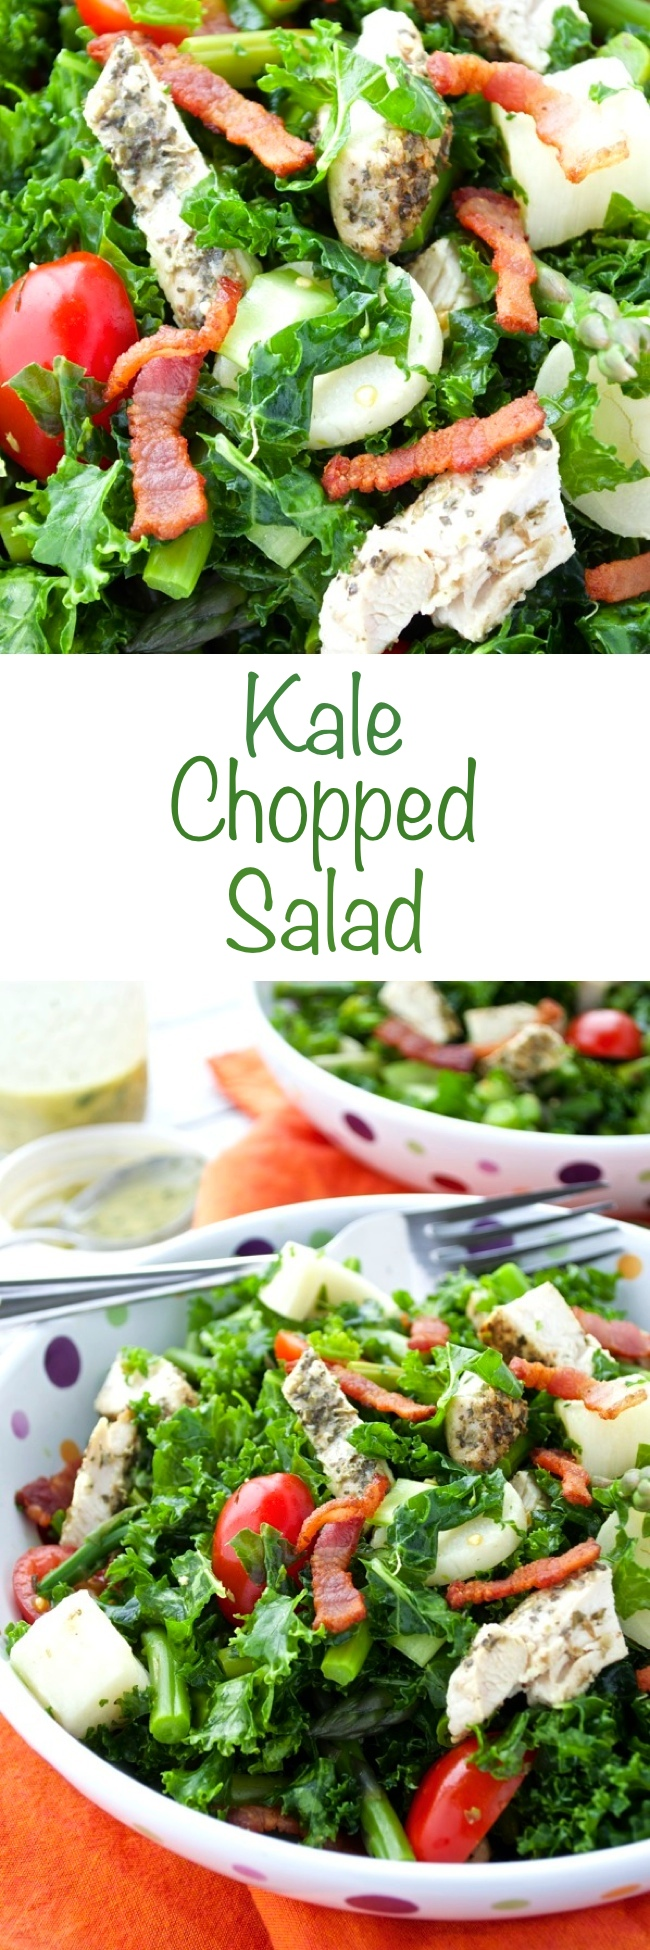 Kale Chopped Salad Pin